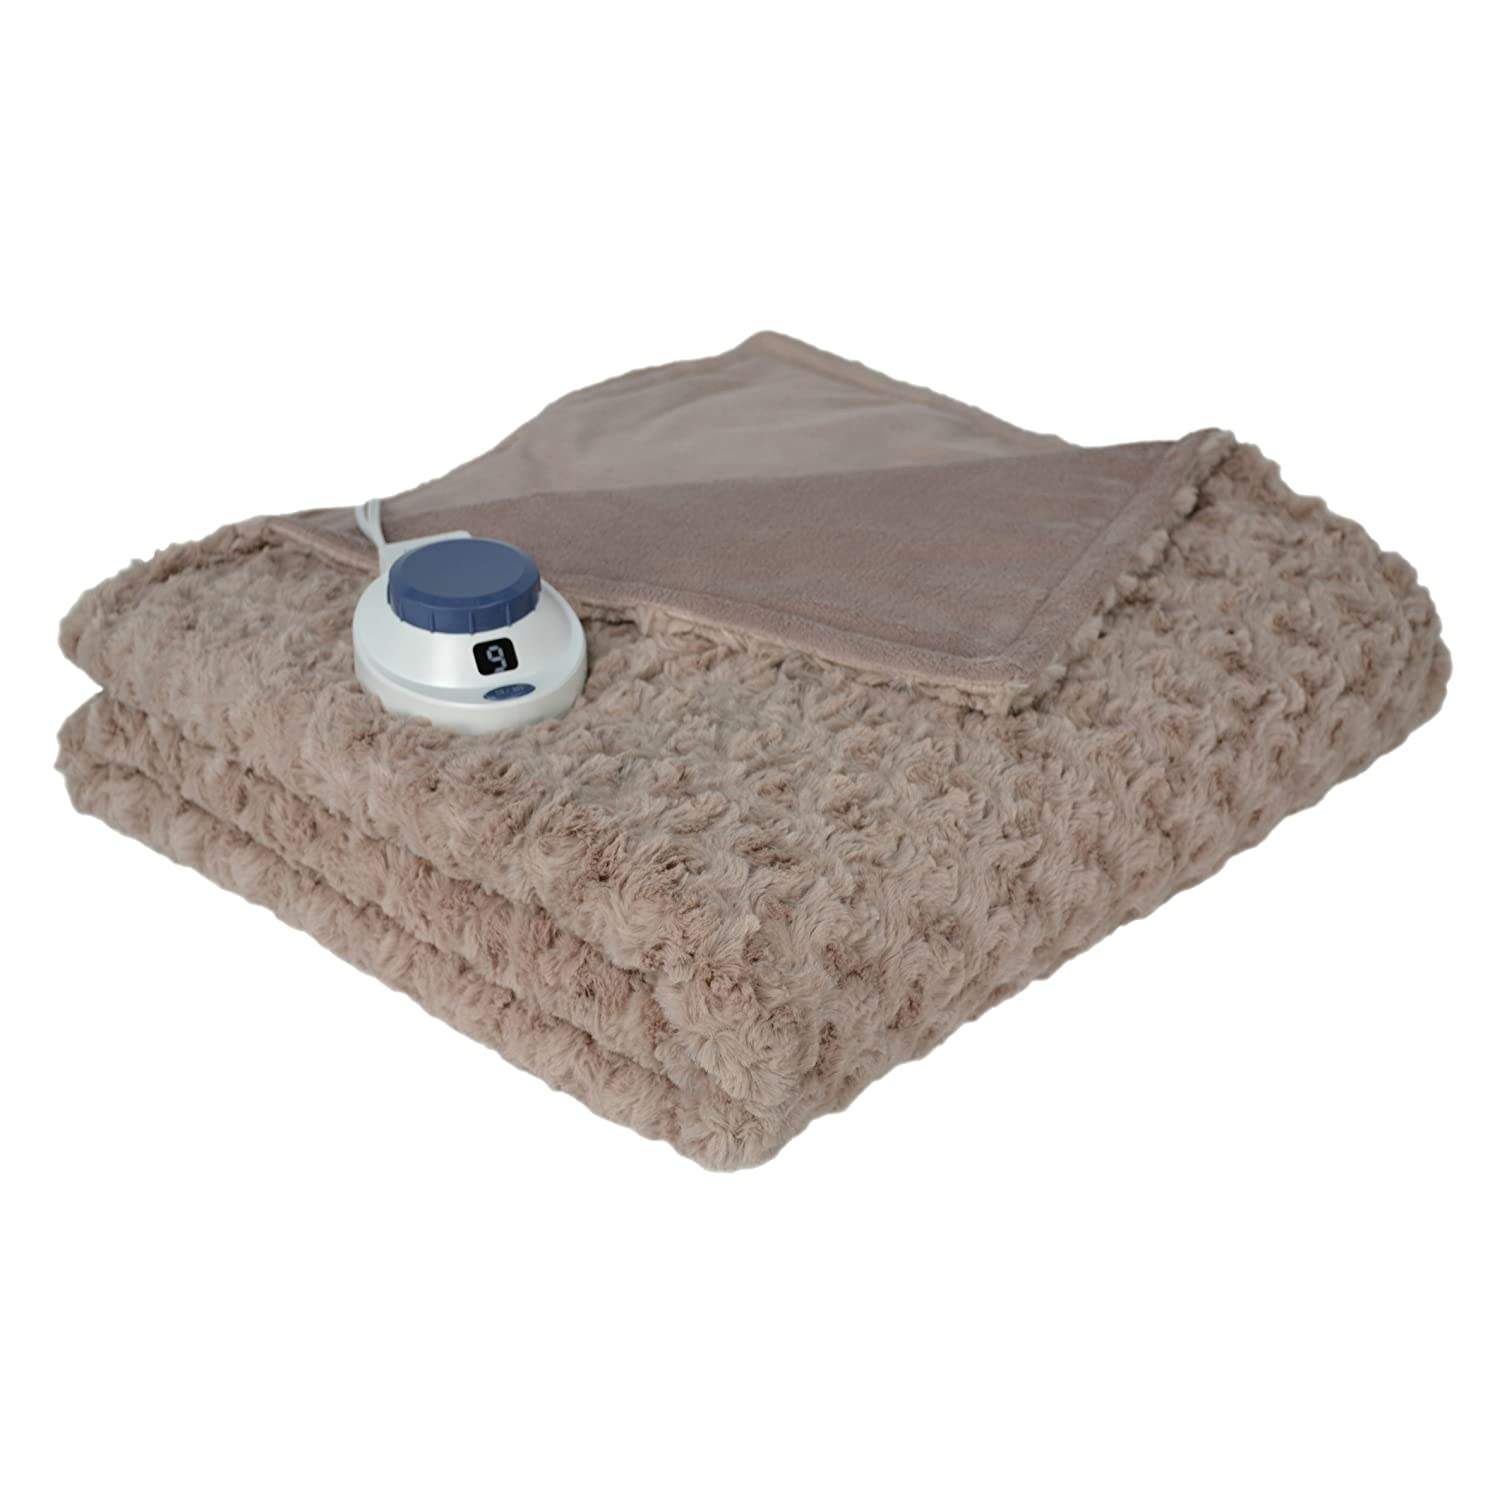 Sunbeam® LoftTec Heated Blanket $ - $ Up to 30% off with code FALL. Free Shipping on Orders $50+ Sunbeam® Channeled Microplush Heated Blanket $ - $ Terms of Sale;.